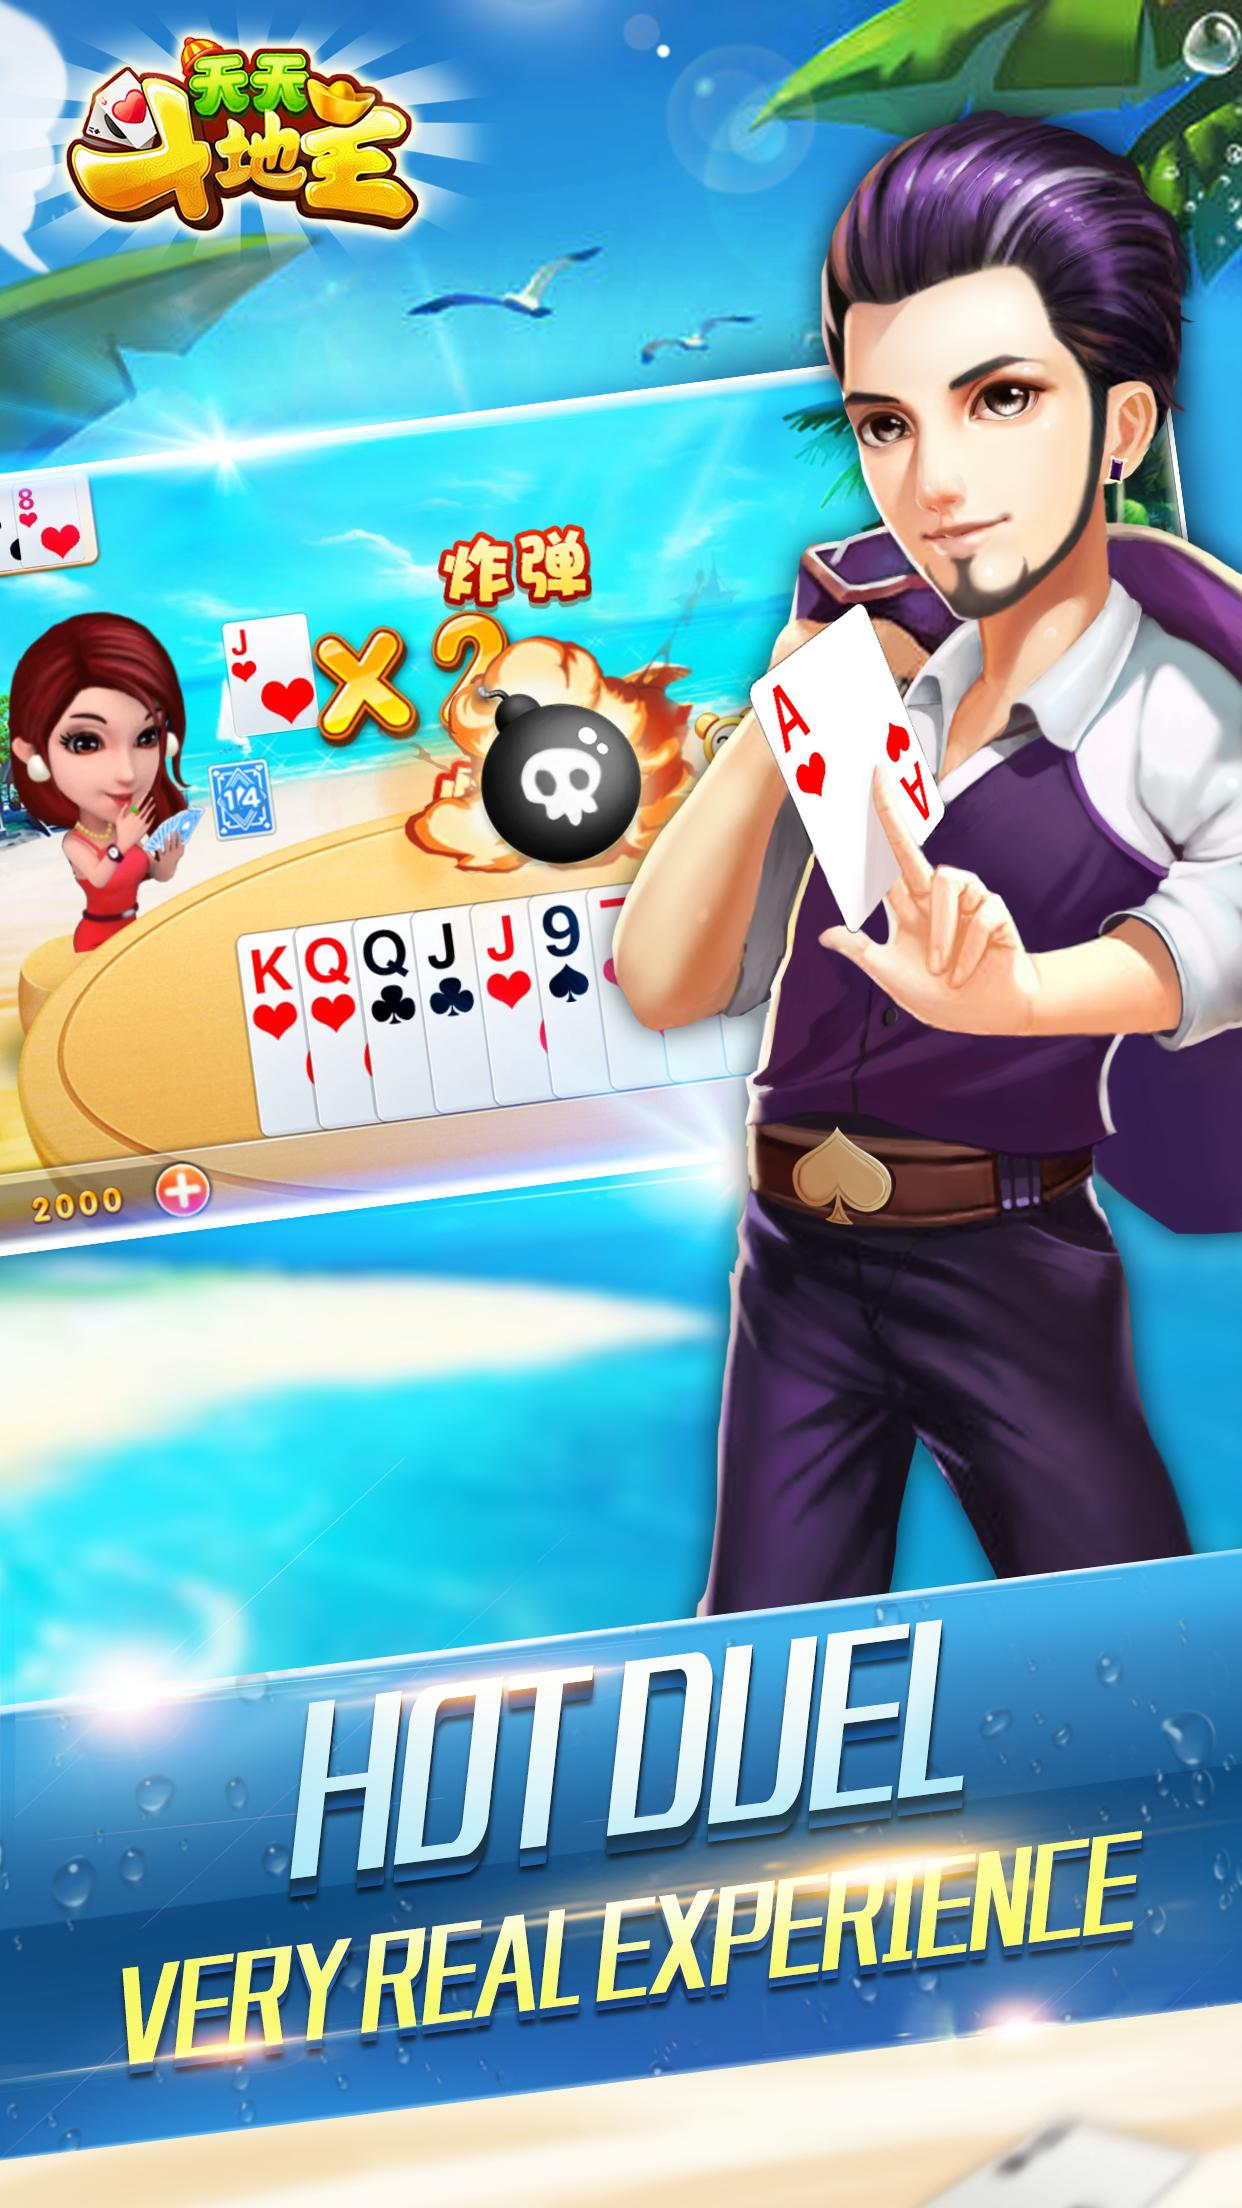 landlords-casino game and card game 1.0 Screenshot 2